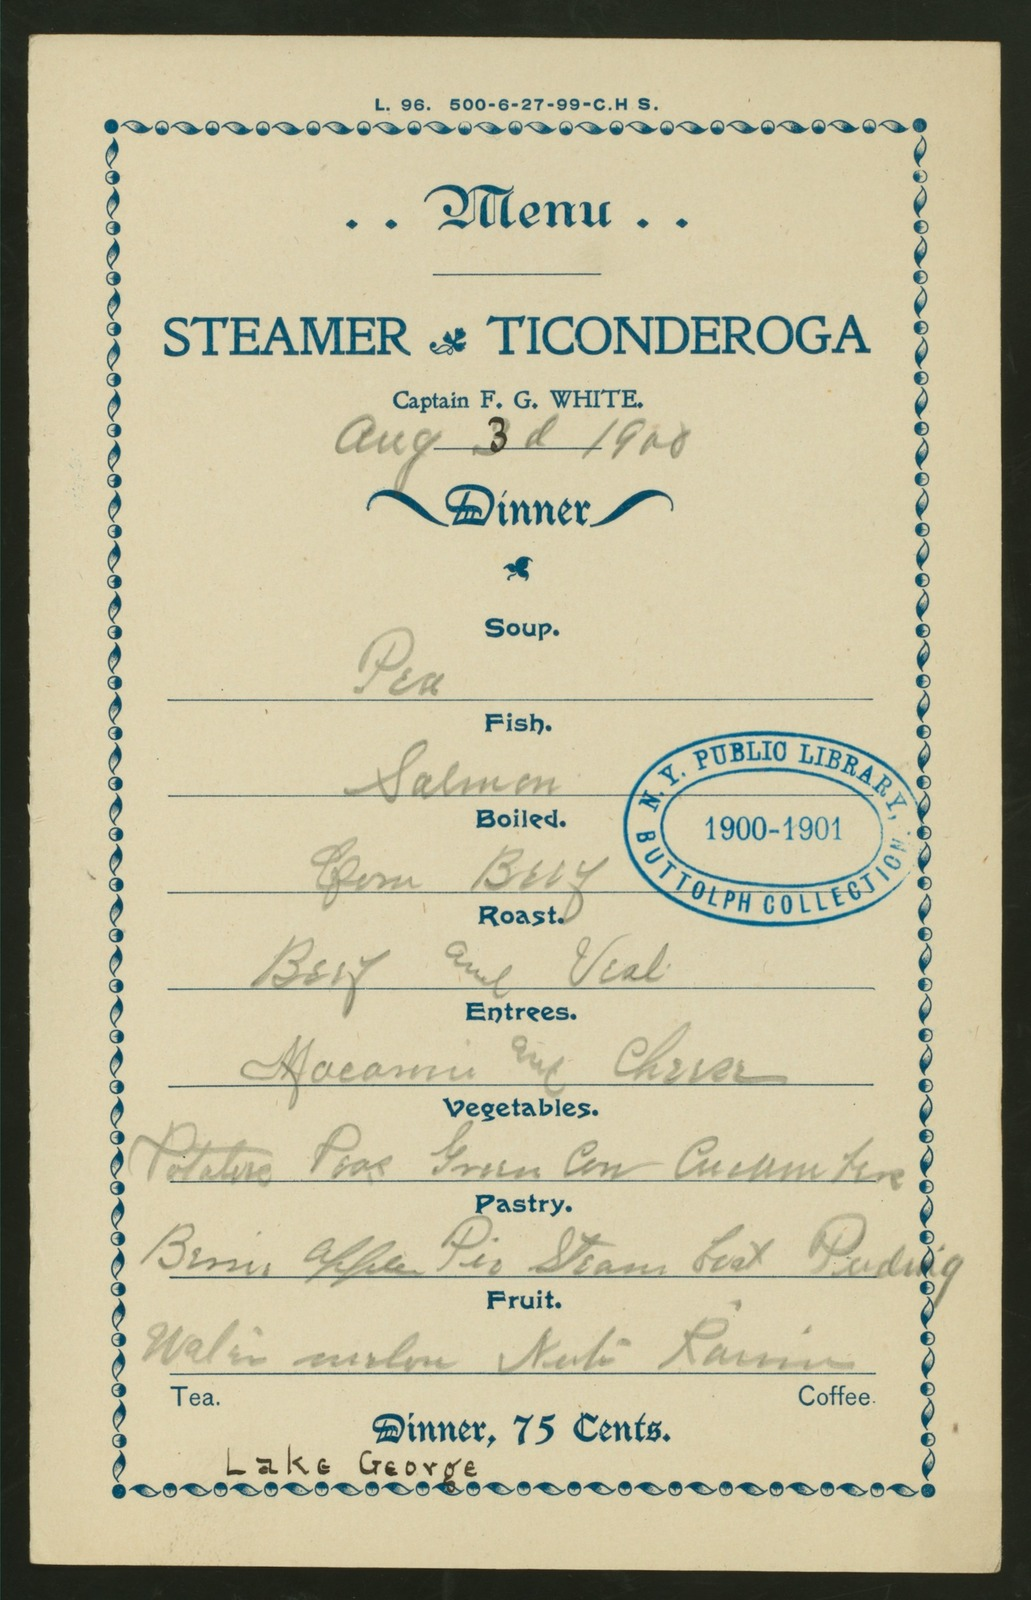 """DINNER [held by] STEAMER TICONDEROGA [at] """"LAKE GEORGE, NY"""" (SS)"""